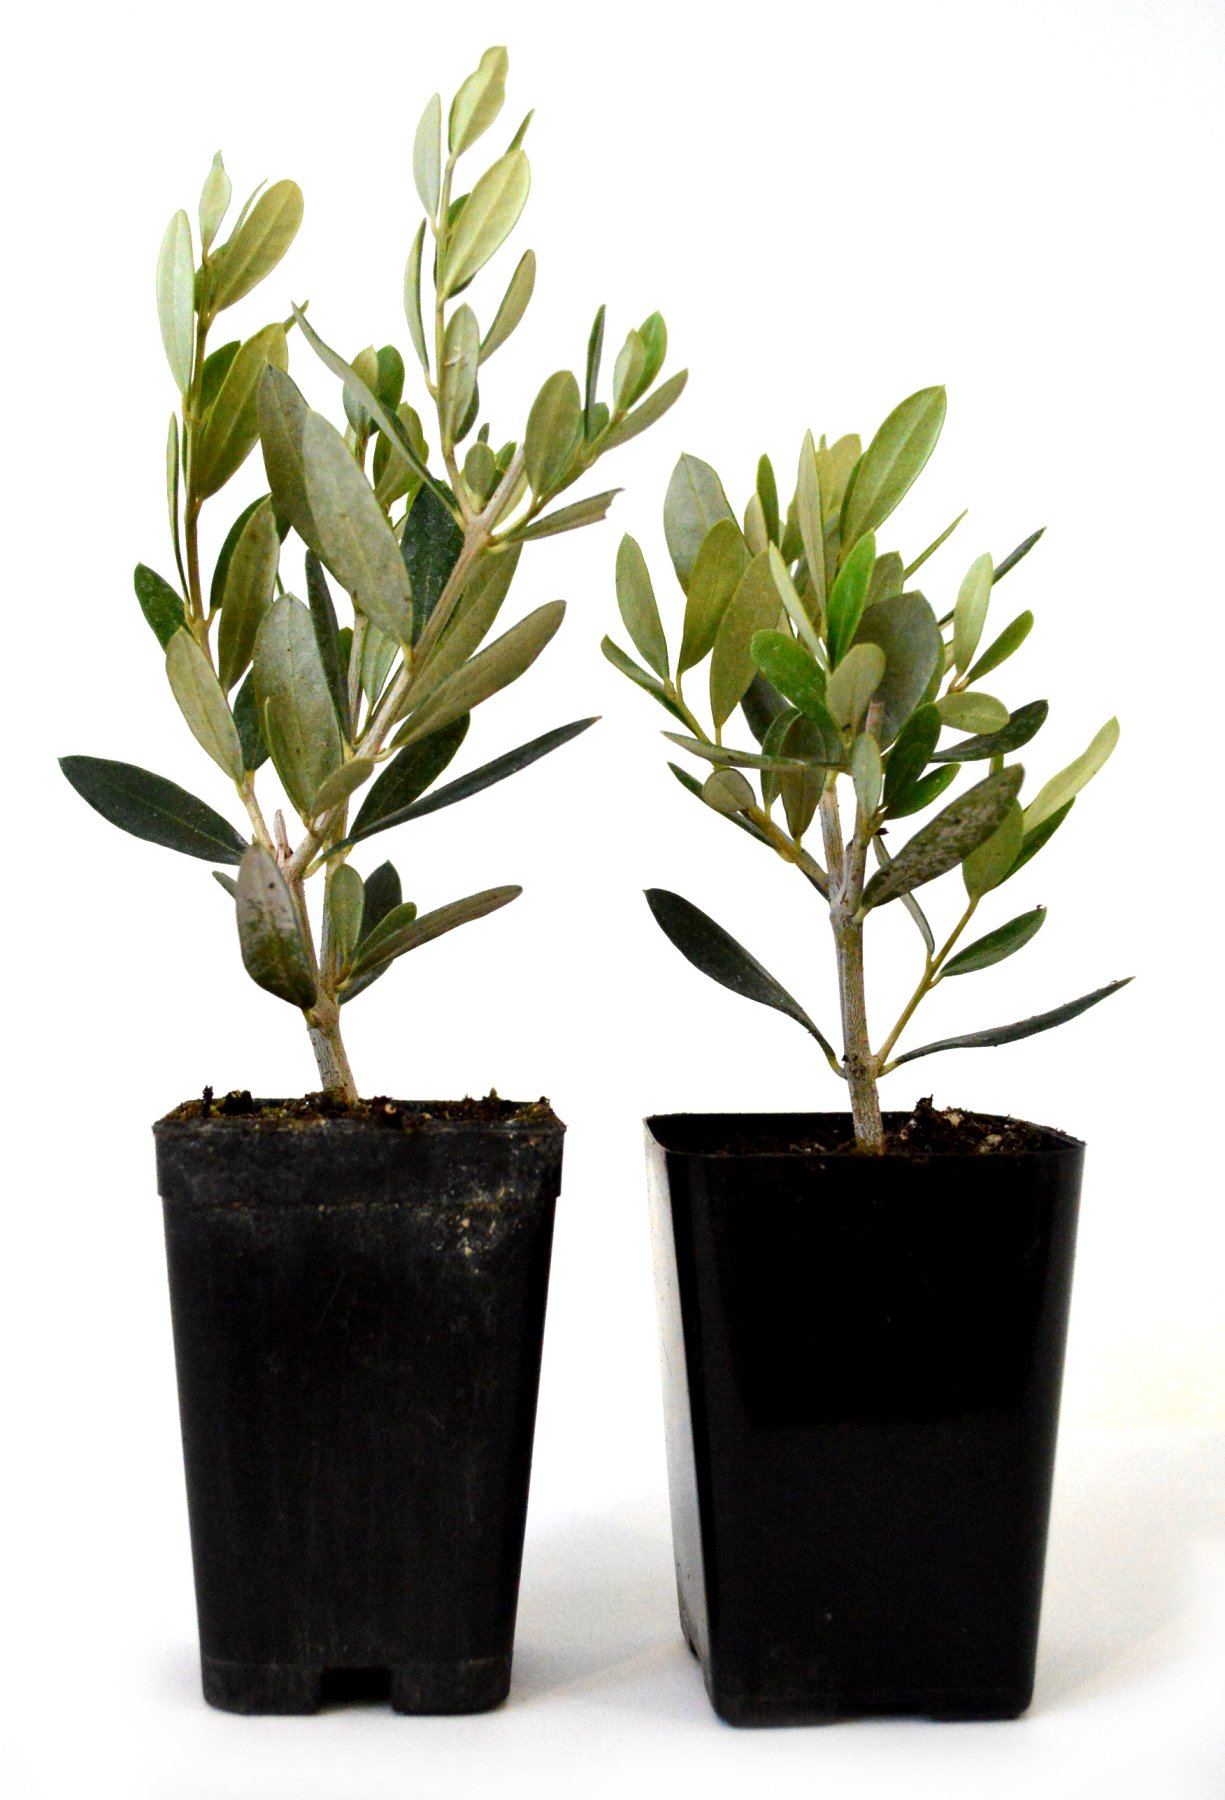 9GreenBox - Olive Tree - Tree of Peace - Olea europaea - 2 Pack